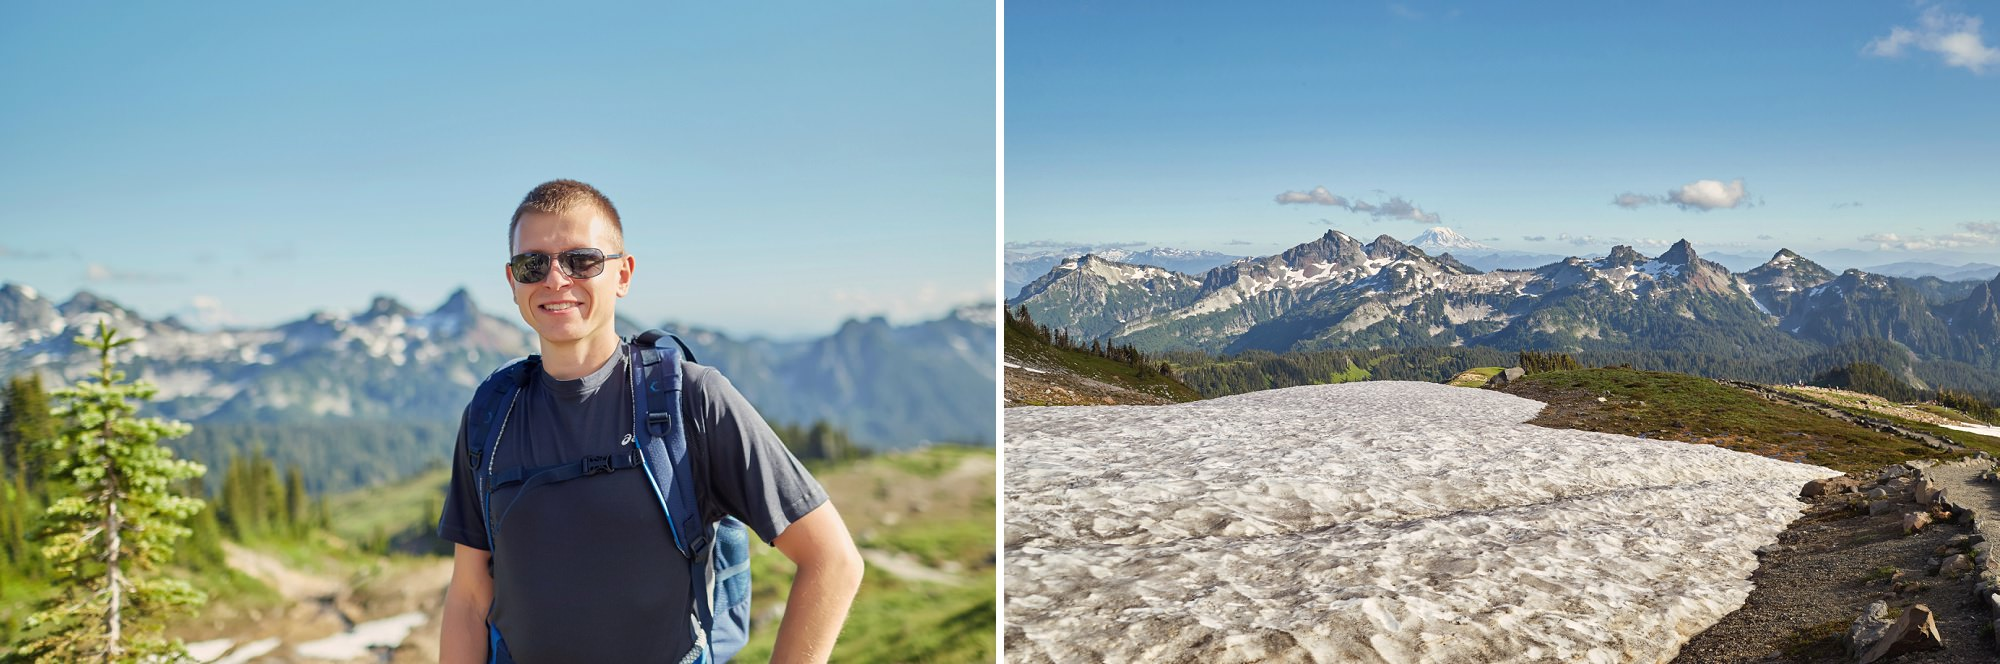 Mount Rainier Photo Session Adventure